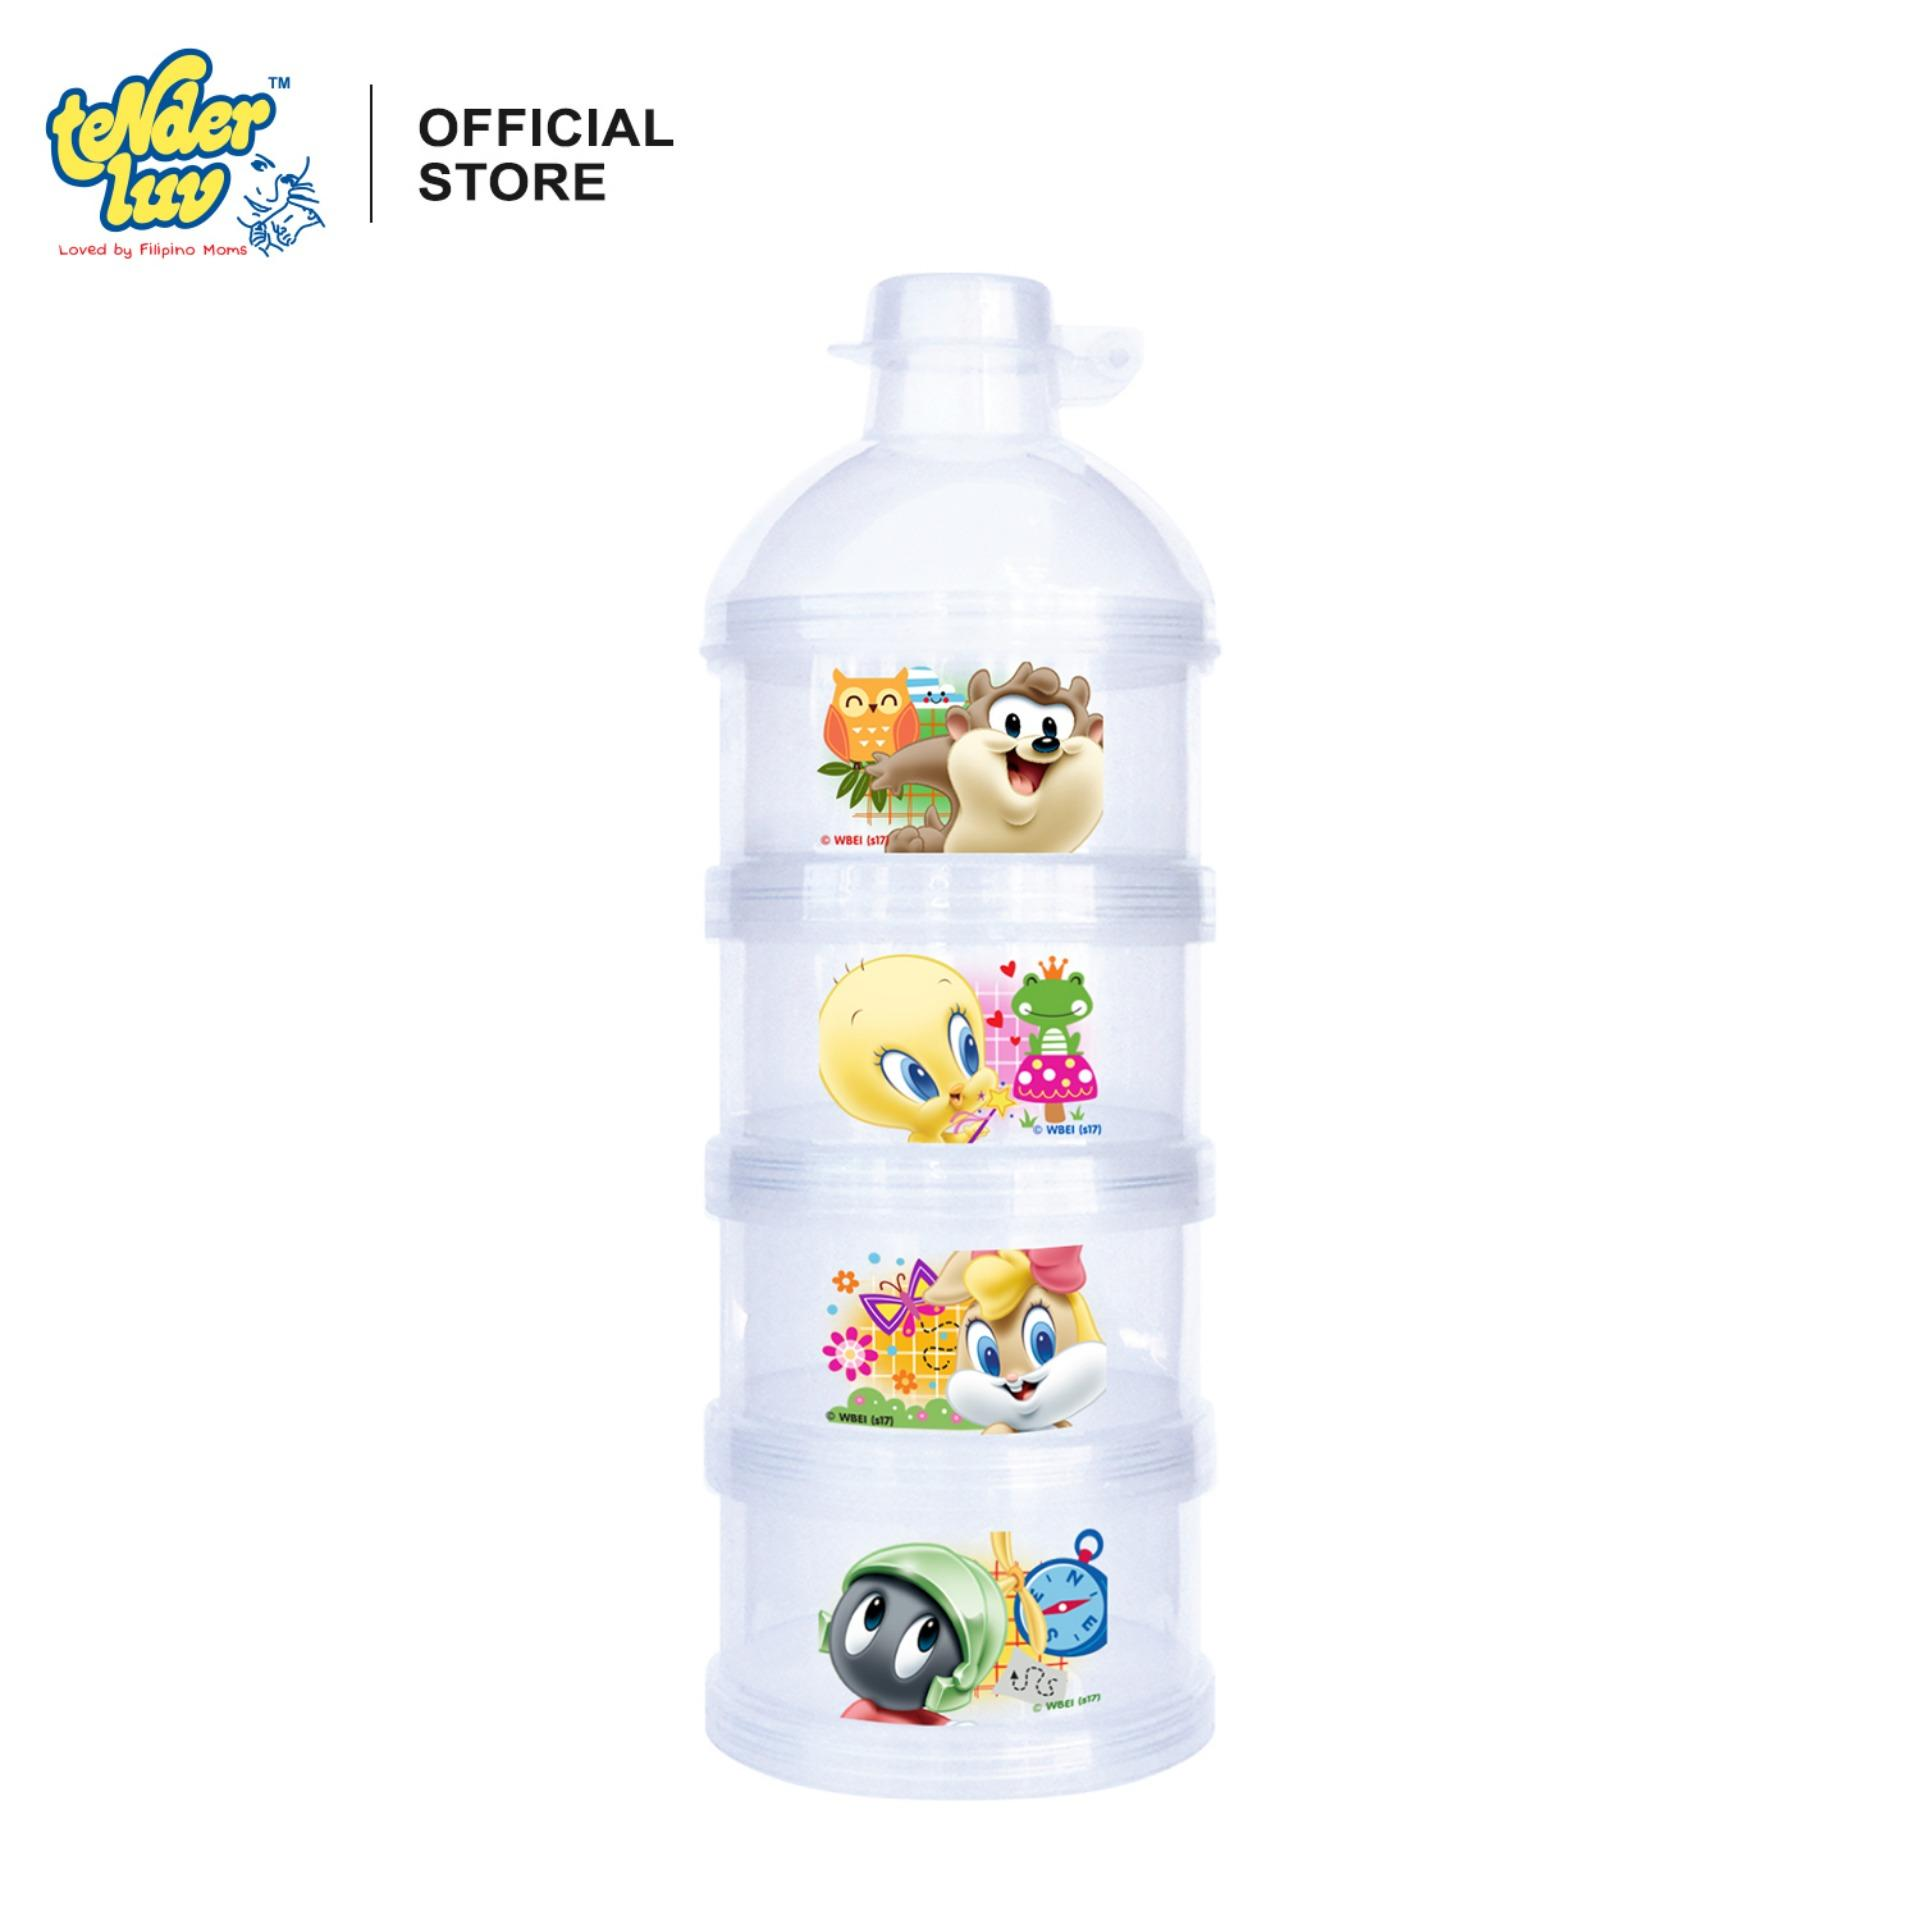 Baby Looney Tunes 4-Layer Super Milker (assorted Designs) By Tender Luv.